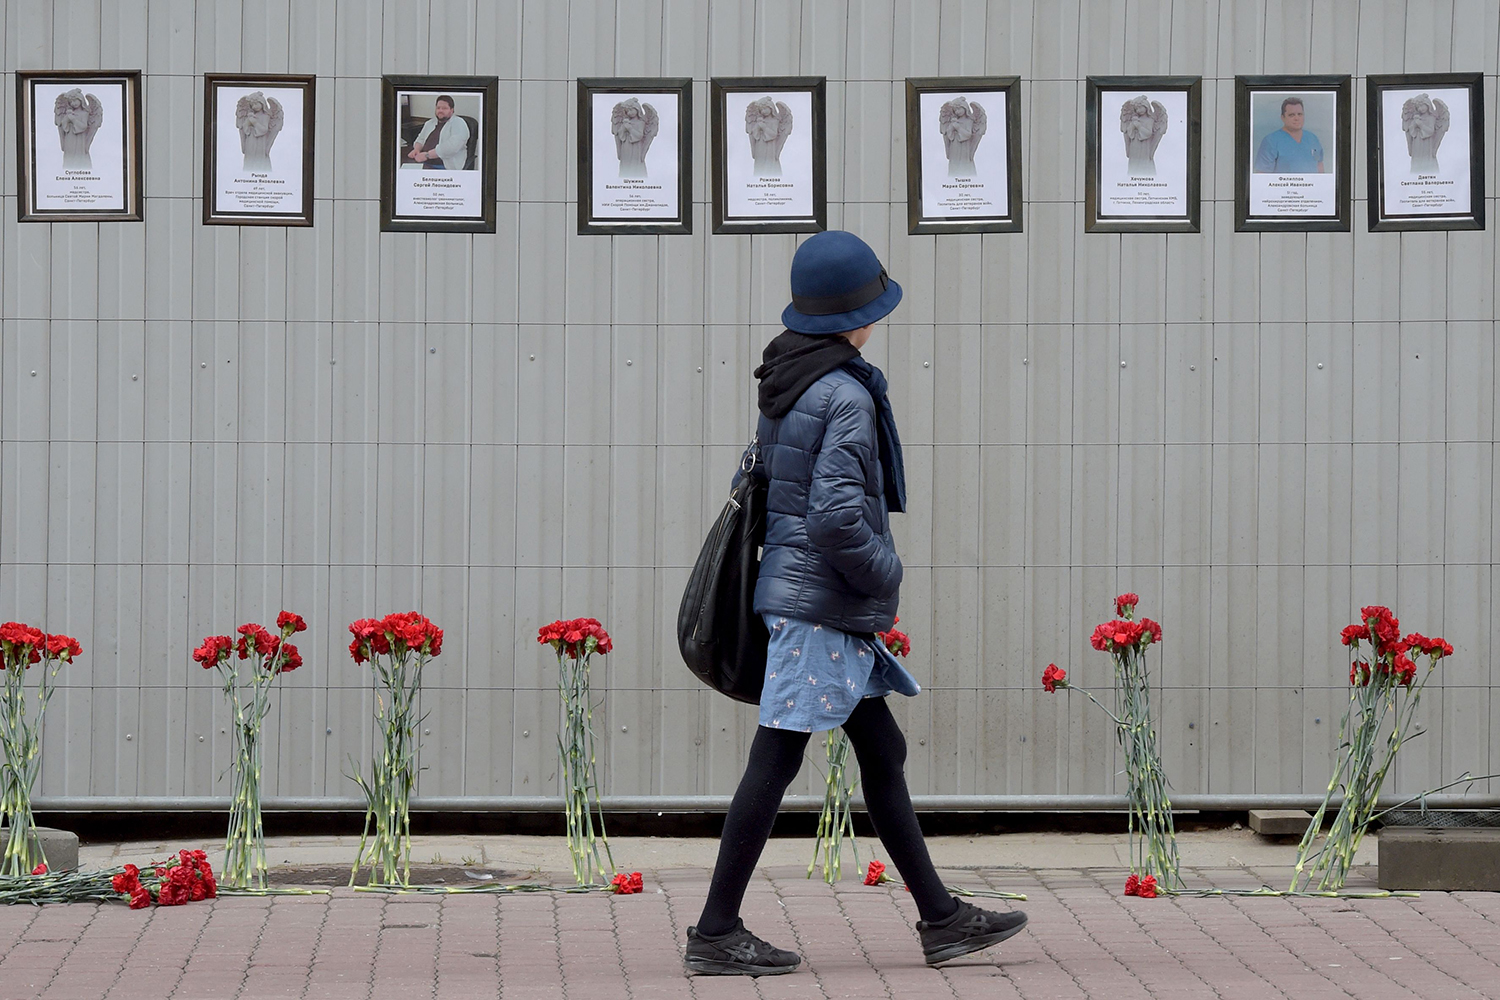 A woman walks past a makeshift memorial for medical workers who have died from COVID-19, set up outside the local health department in Saint Petersburg, Russia, on April 28. OLGA MALTSEVA/AFP via Getty Images